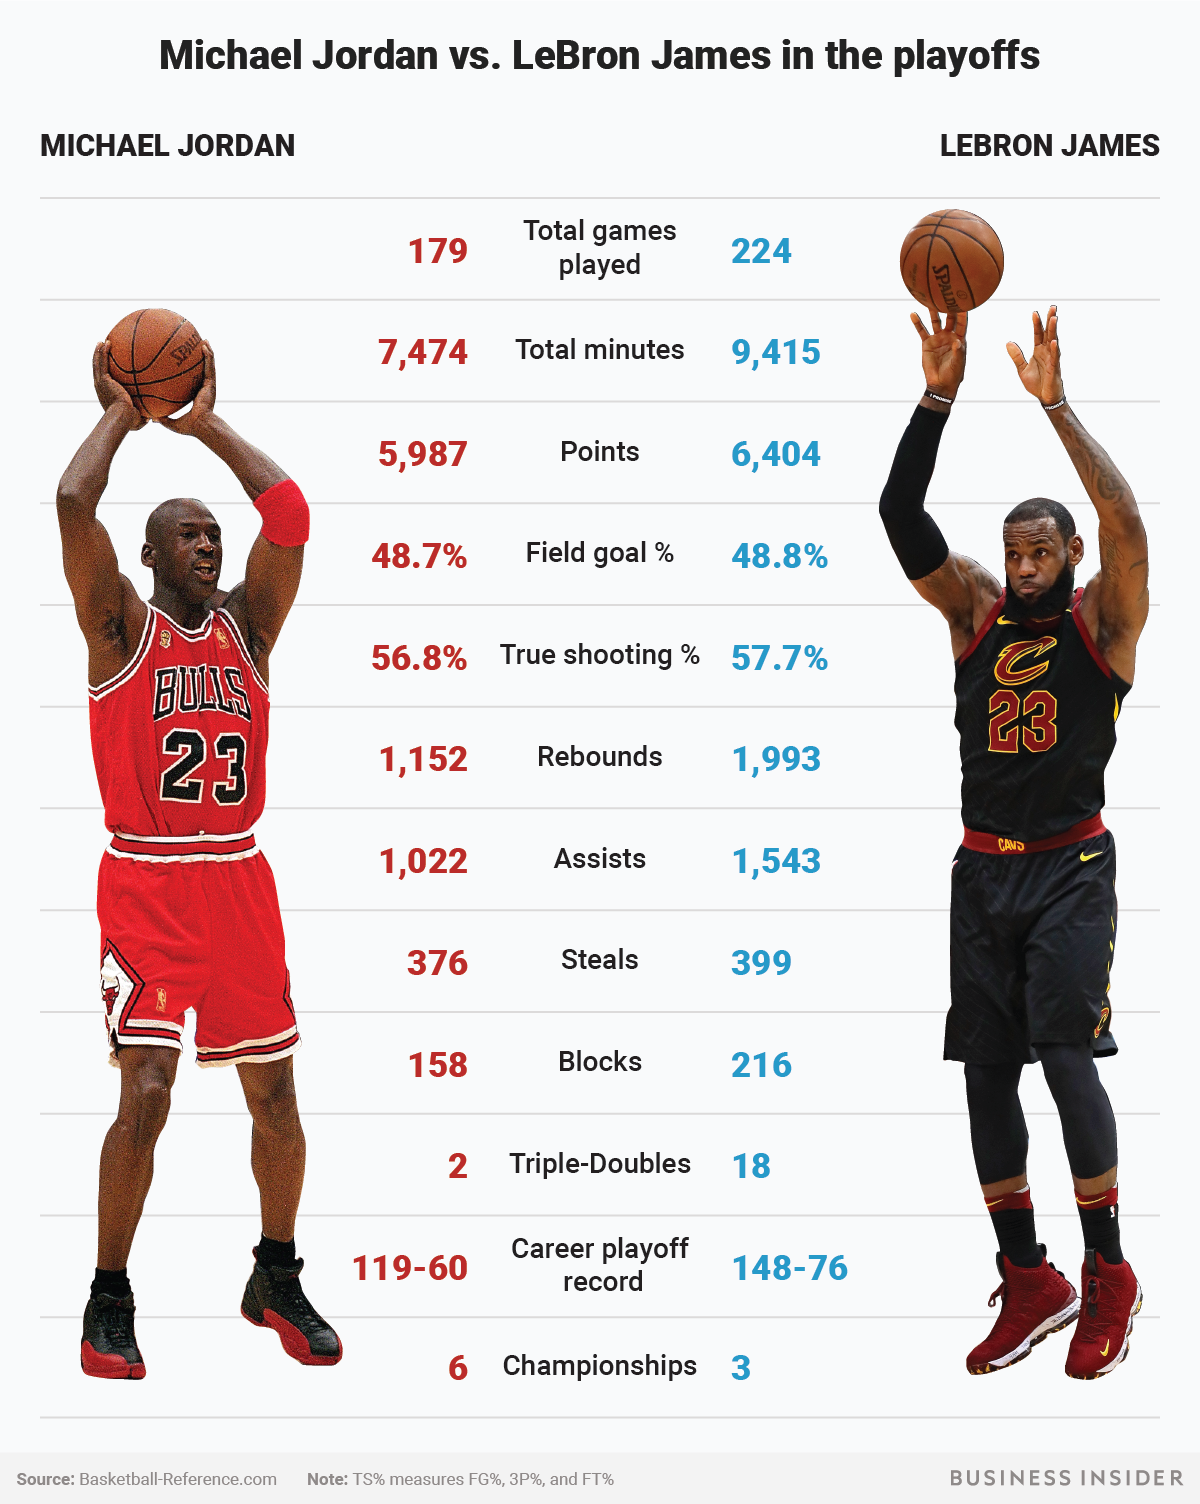 LeBron James has passed Michael Jordan in nearly every